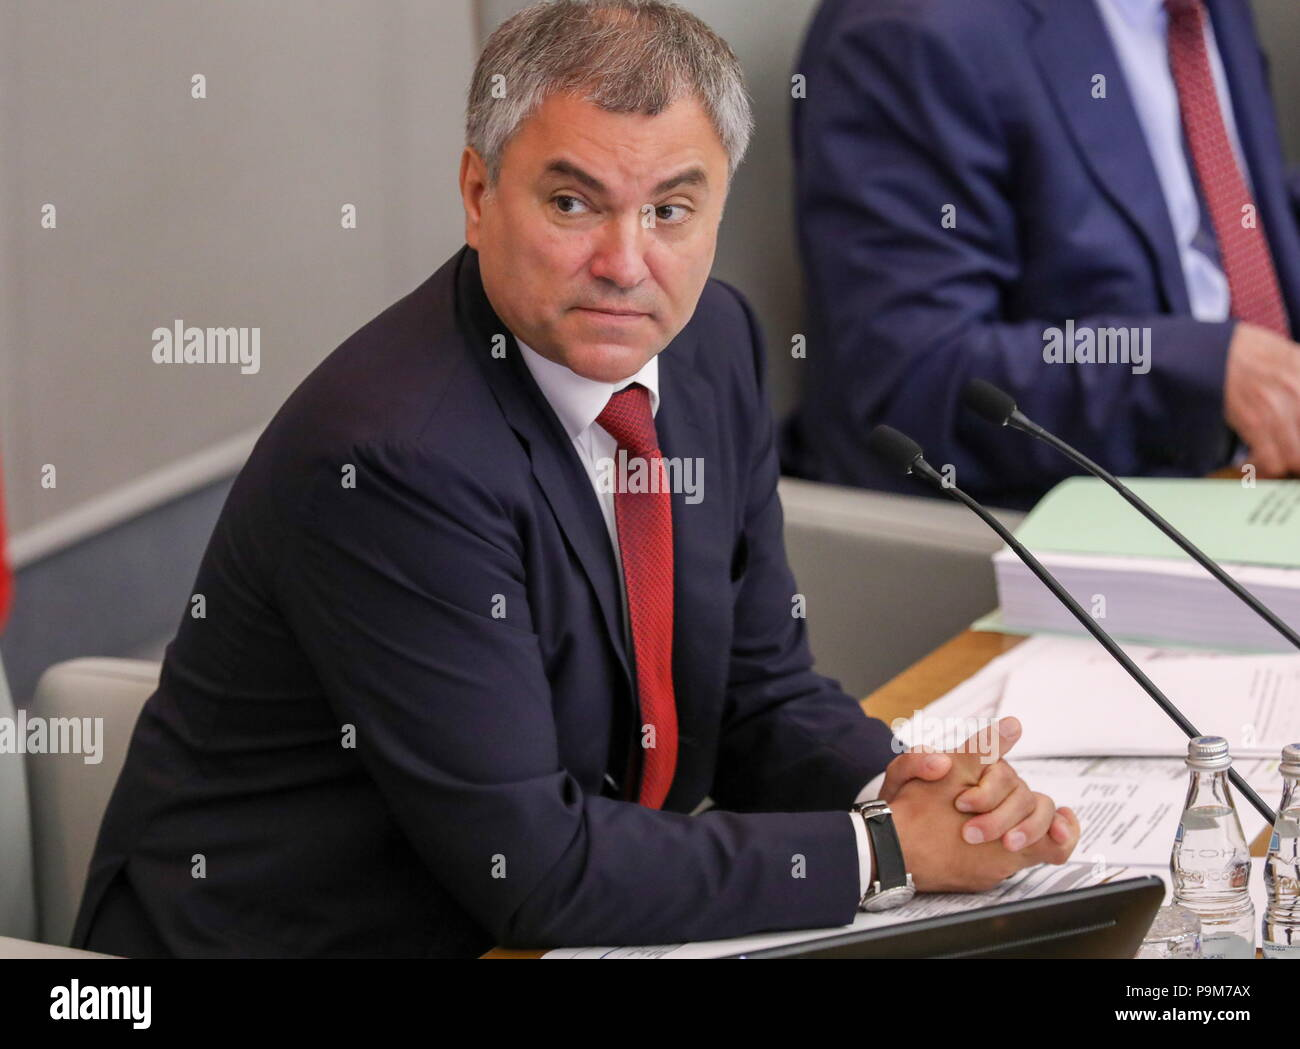 Moscow, Russia. 19th July, 2018. MOSCOW, RUSSIA - JULY 19, 2018: State Duma Chairman Vyacheslav Volodin at a plenary session of the Russian State Duma holding the first reading of a draft law to raise the retirement age from 60 to 65 for men, and from 55 to 63 for women over a 15-year period. Anton Novoderezhkin/TASS Credit: ITAR-TASS News Agency/Alamy Live News - Stock Image